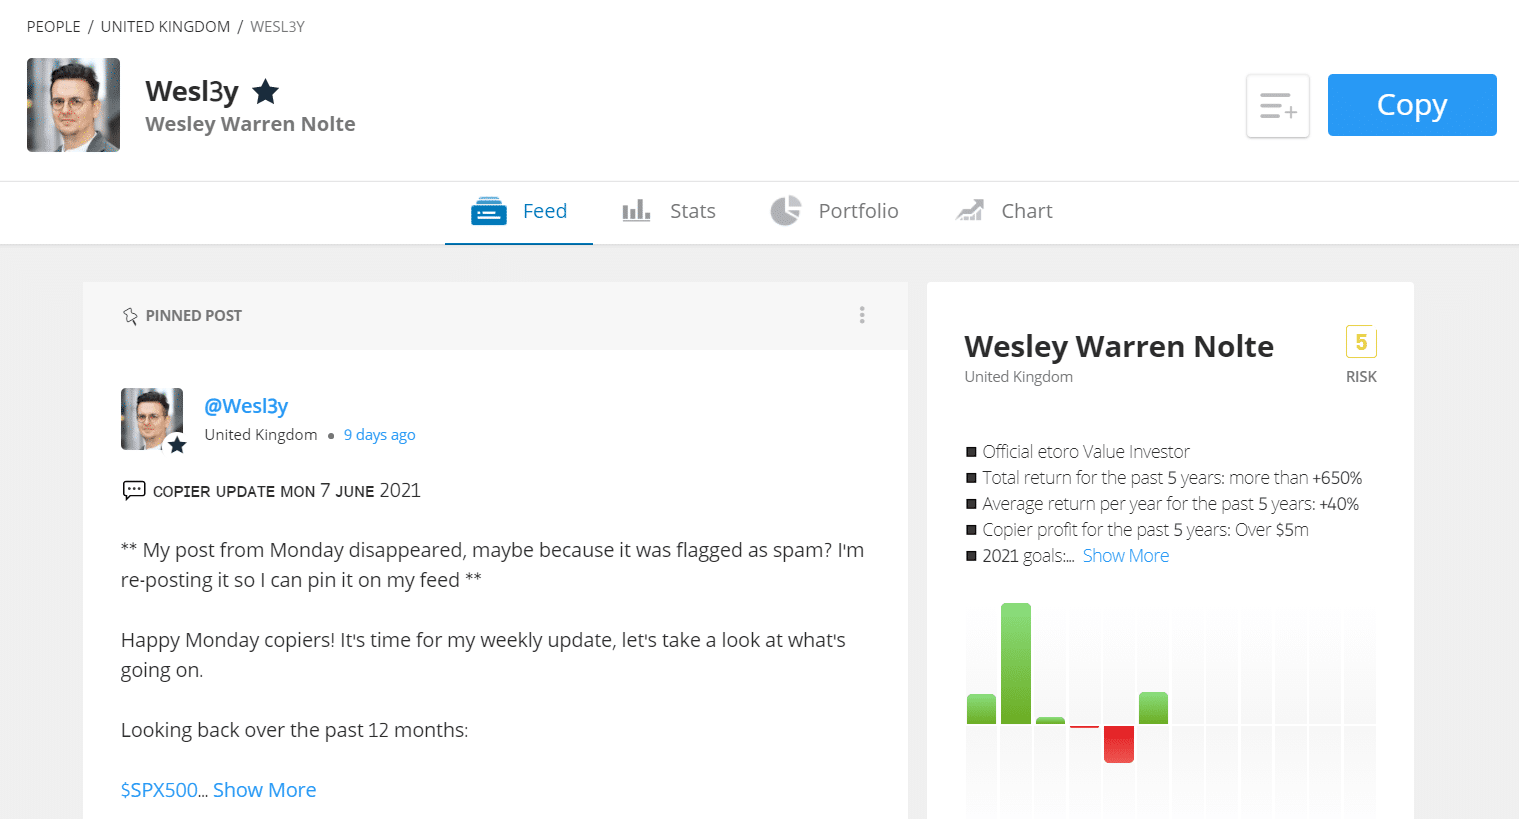 the screenshot shows that Wesley Nolte of eToro regularly shares ideas with his followers in eToro